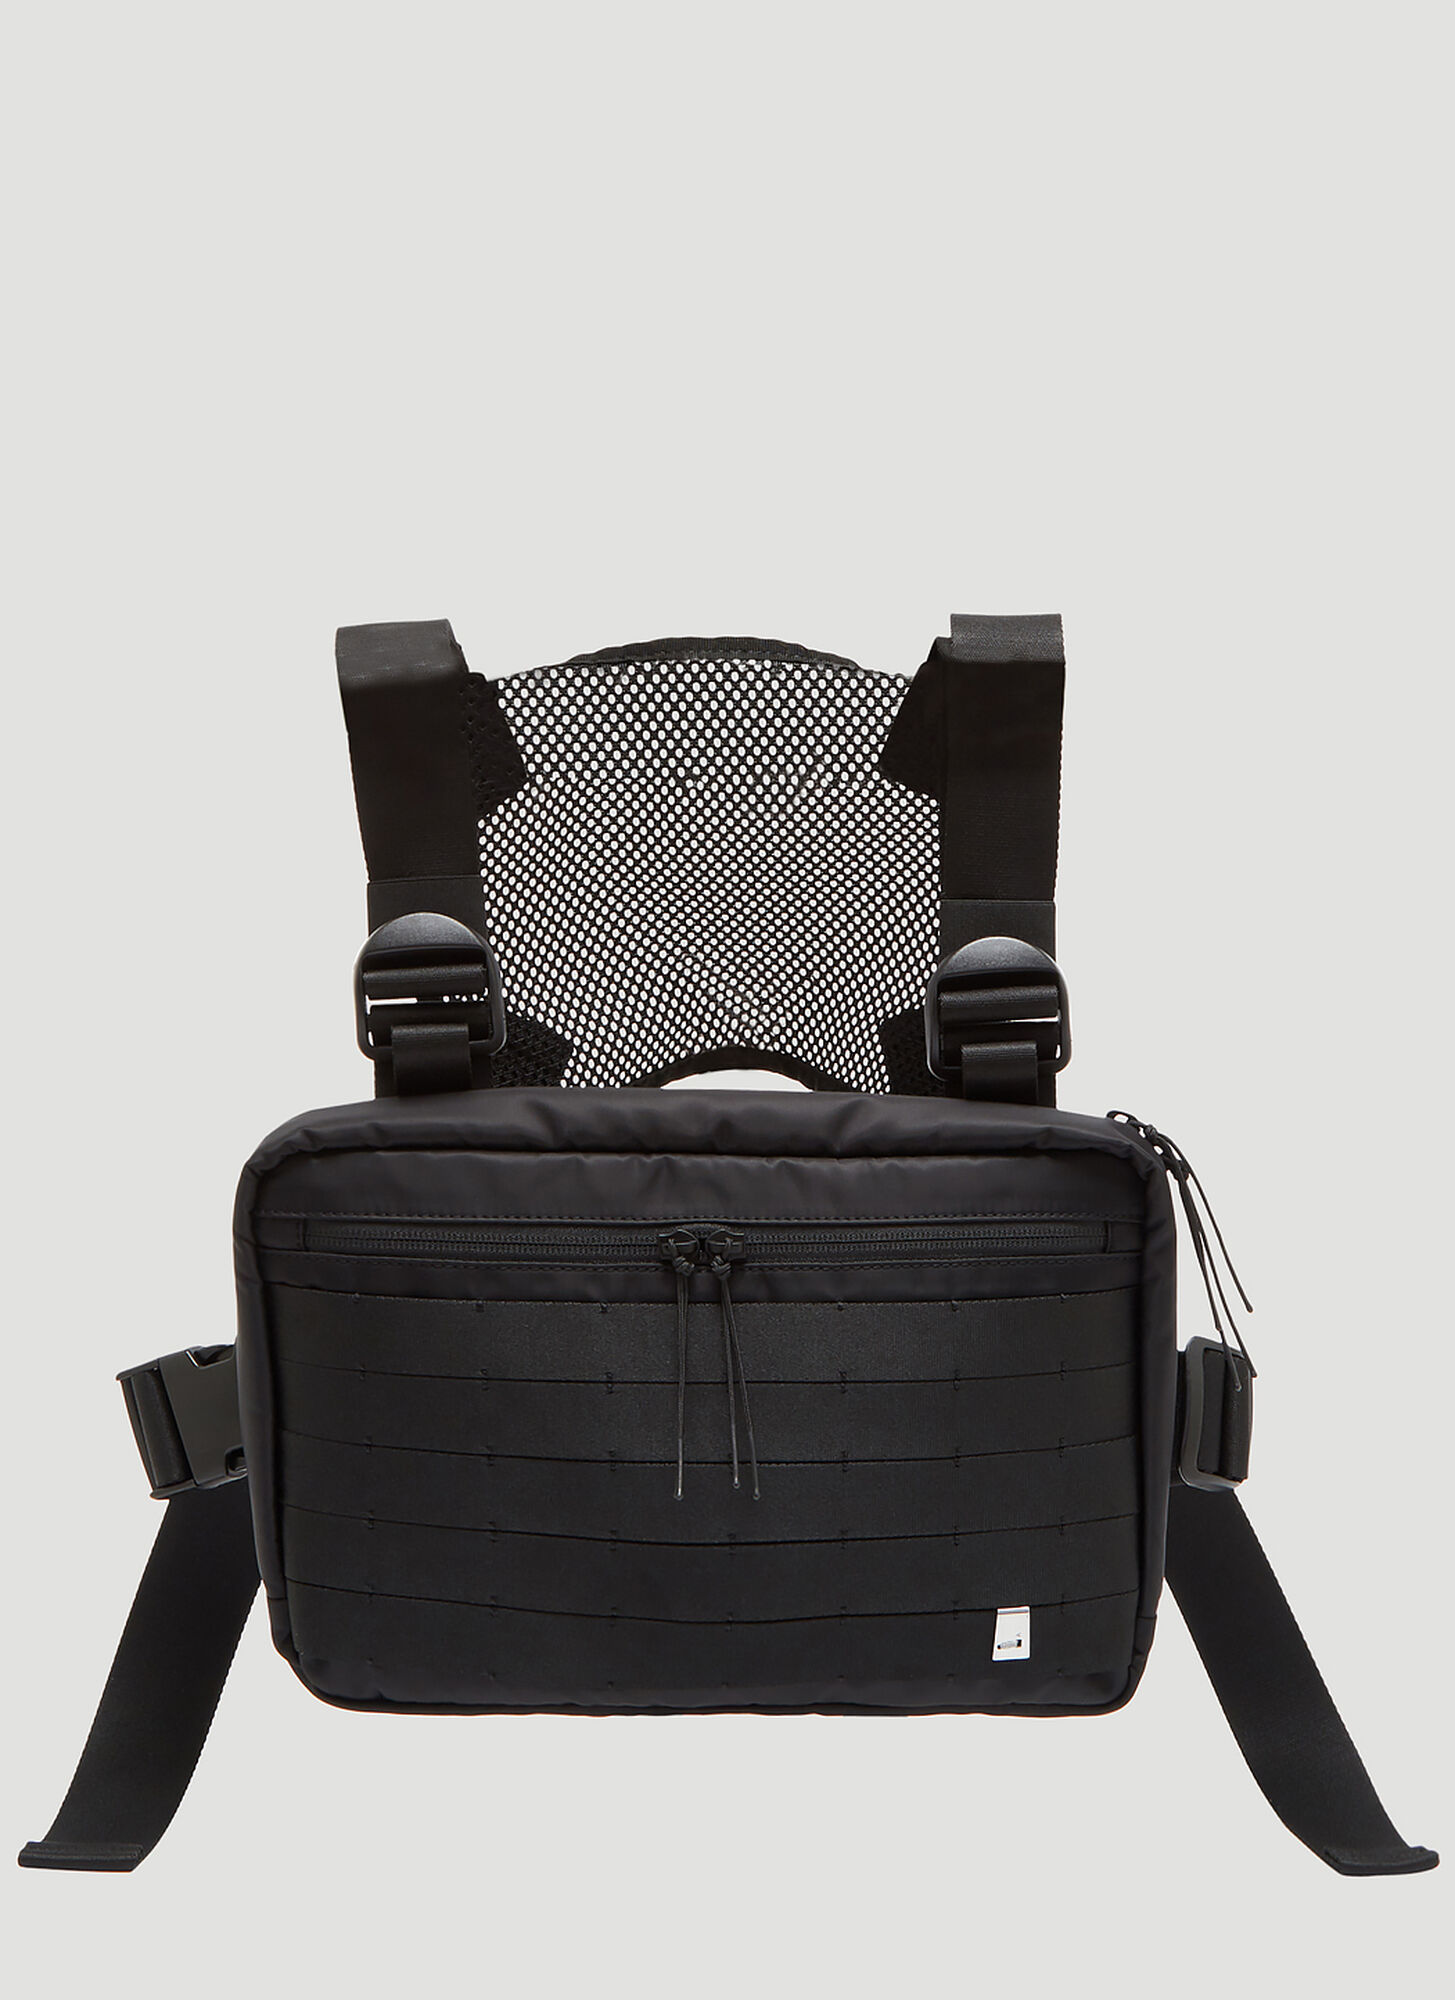 1017 ALYX 9SM Classic Chest Rig in Black size One Size